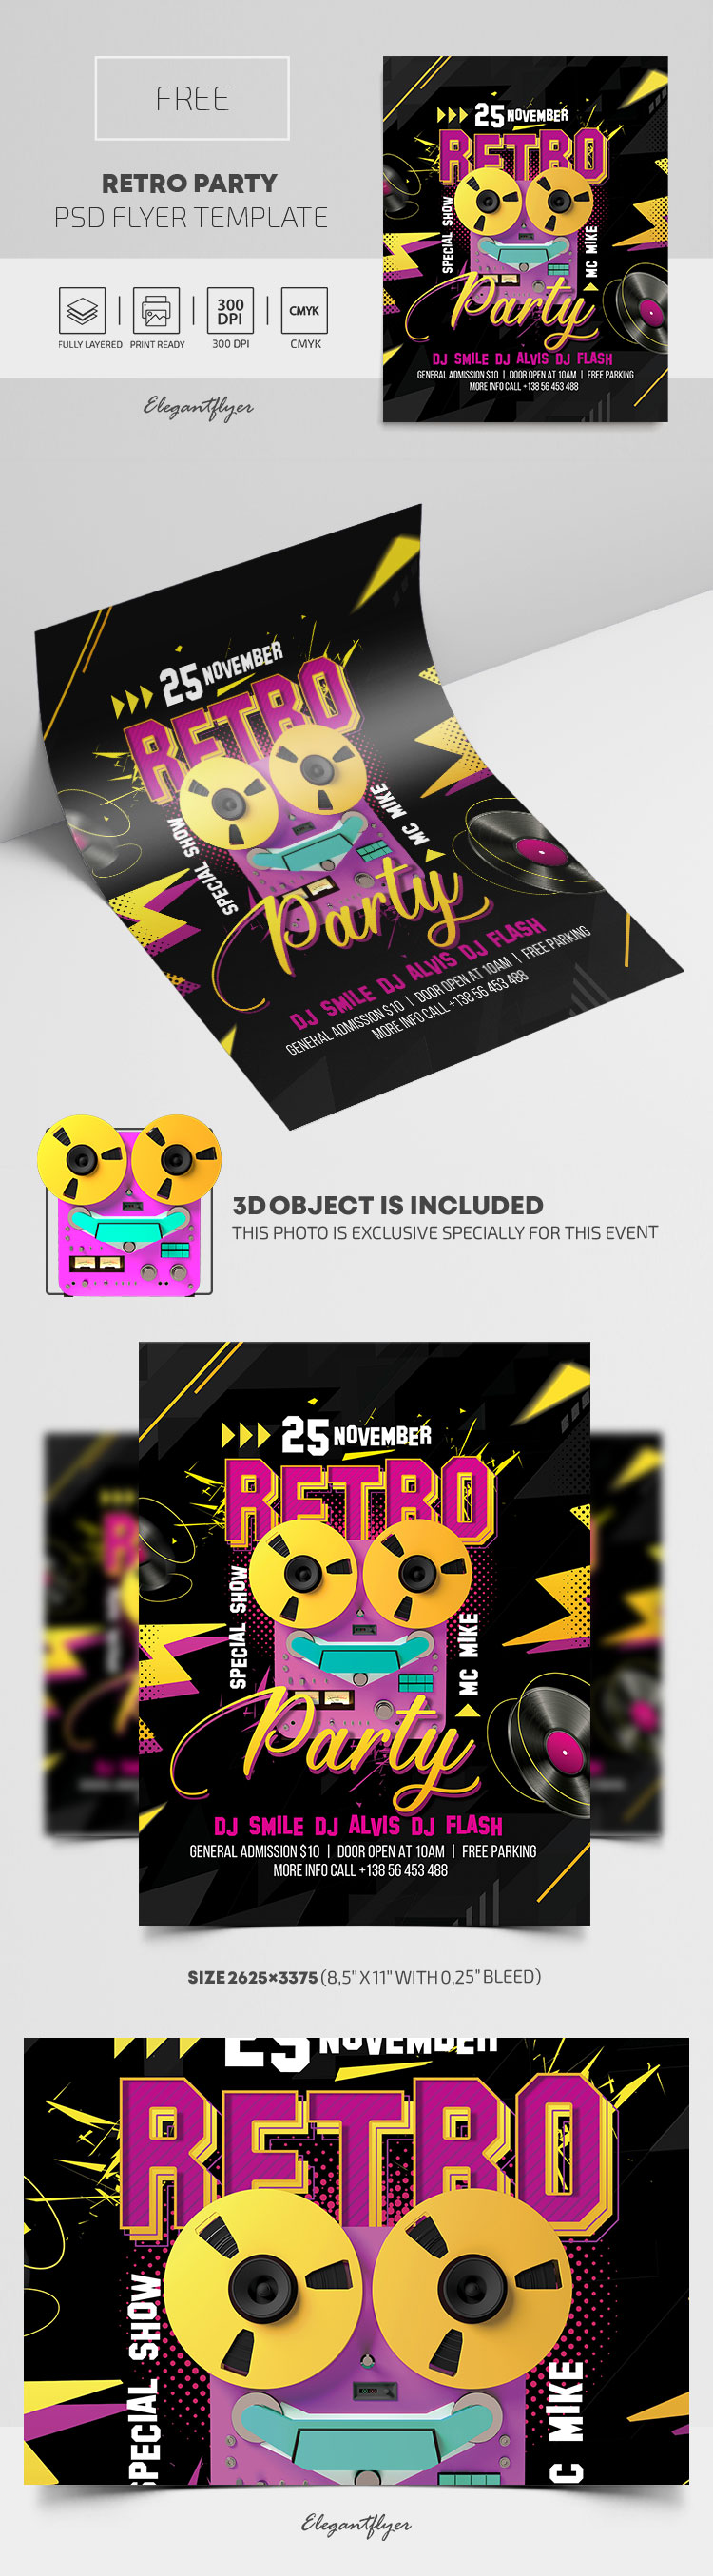 Retro Party – Free PSD Flyer Template